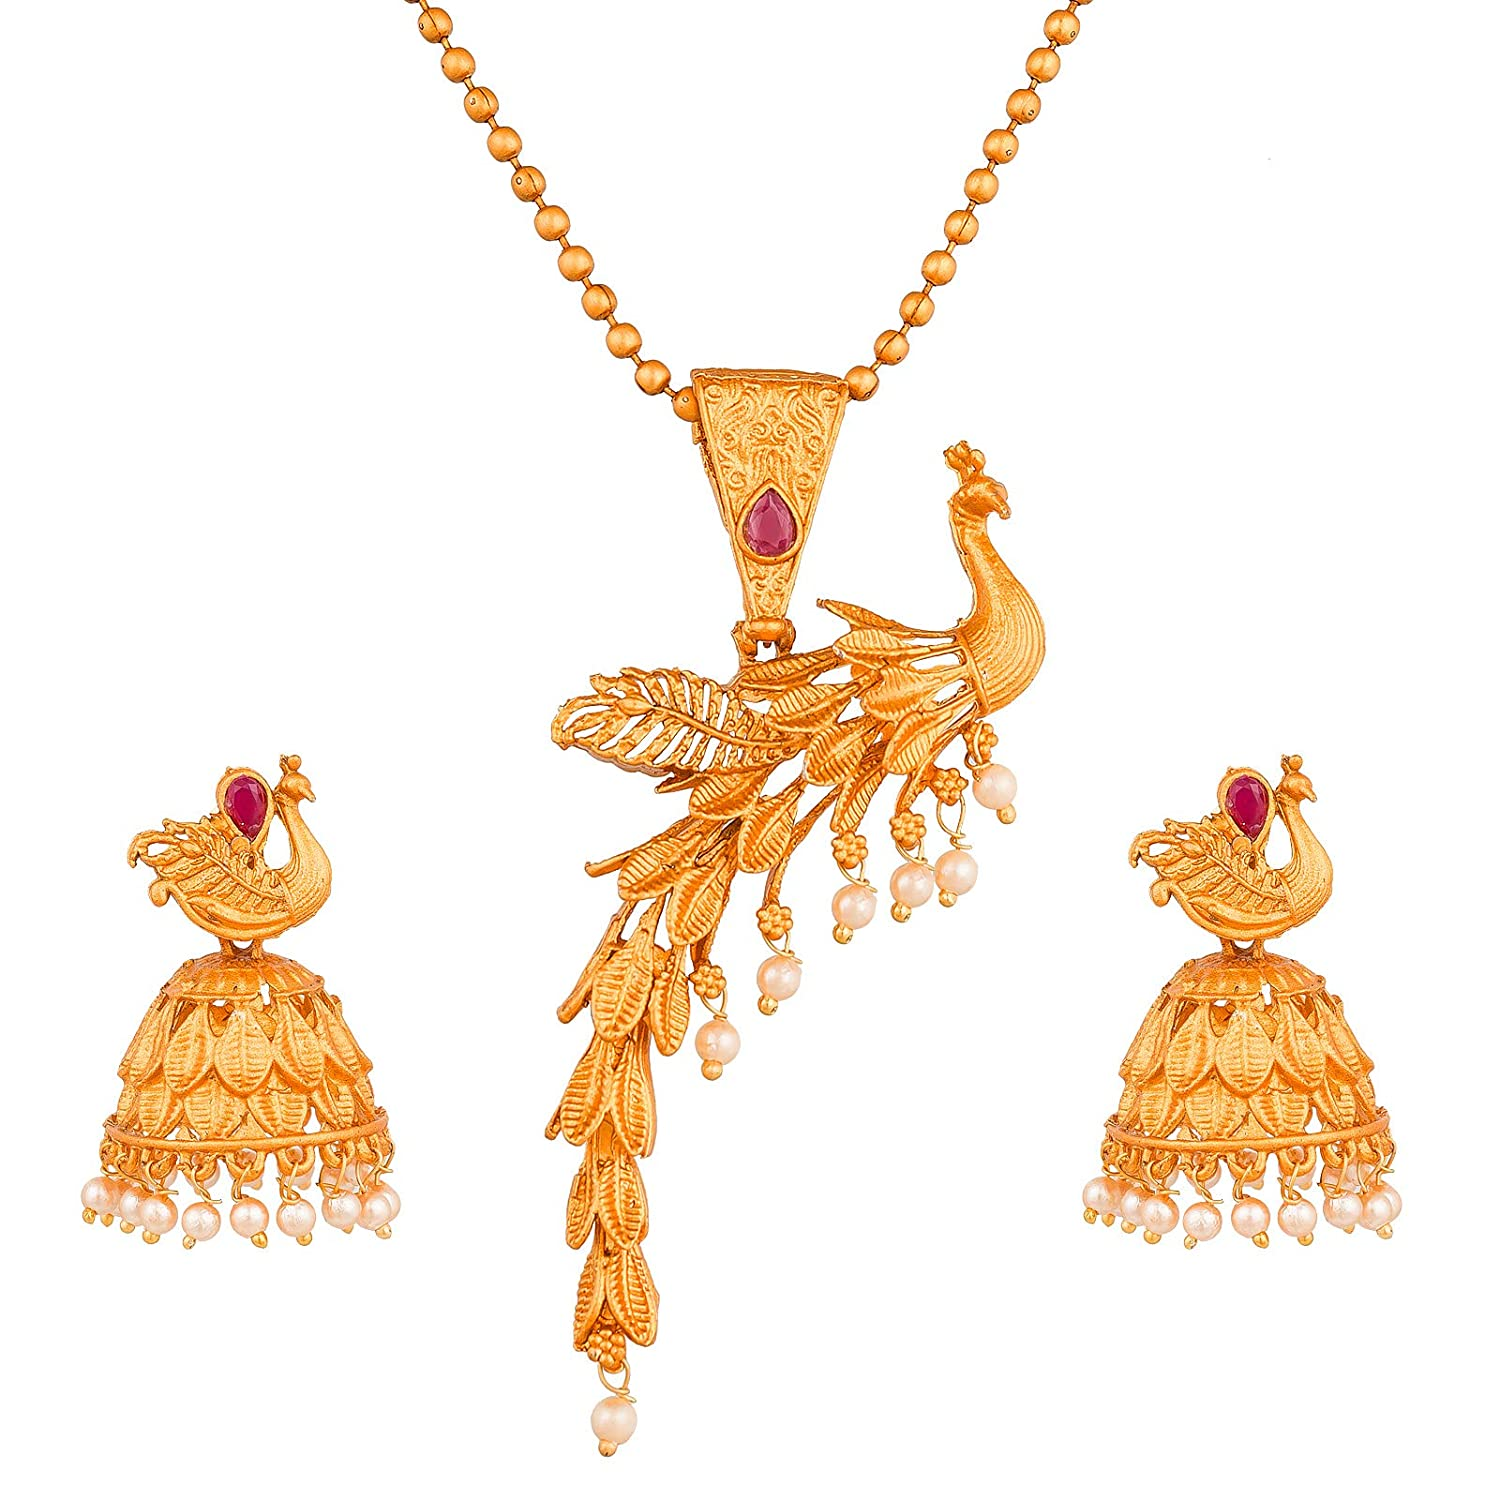 06eb8eea9f6c3e Buy The Luxor Gold Non-Precious Metal Peacock Design Charm Necklace Pendant  Set with Earrings for Women Online at Low Prices in India | Amazon  Jewellery ...